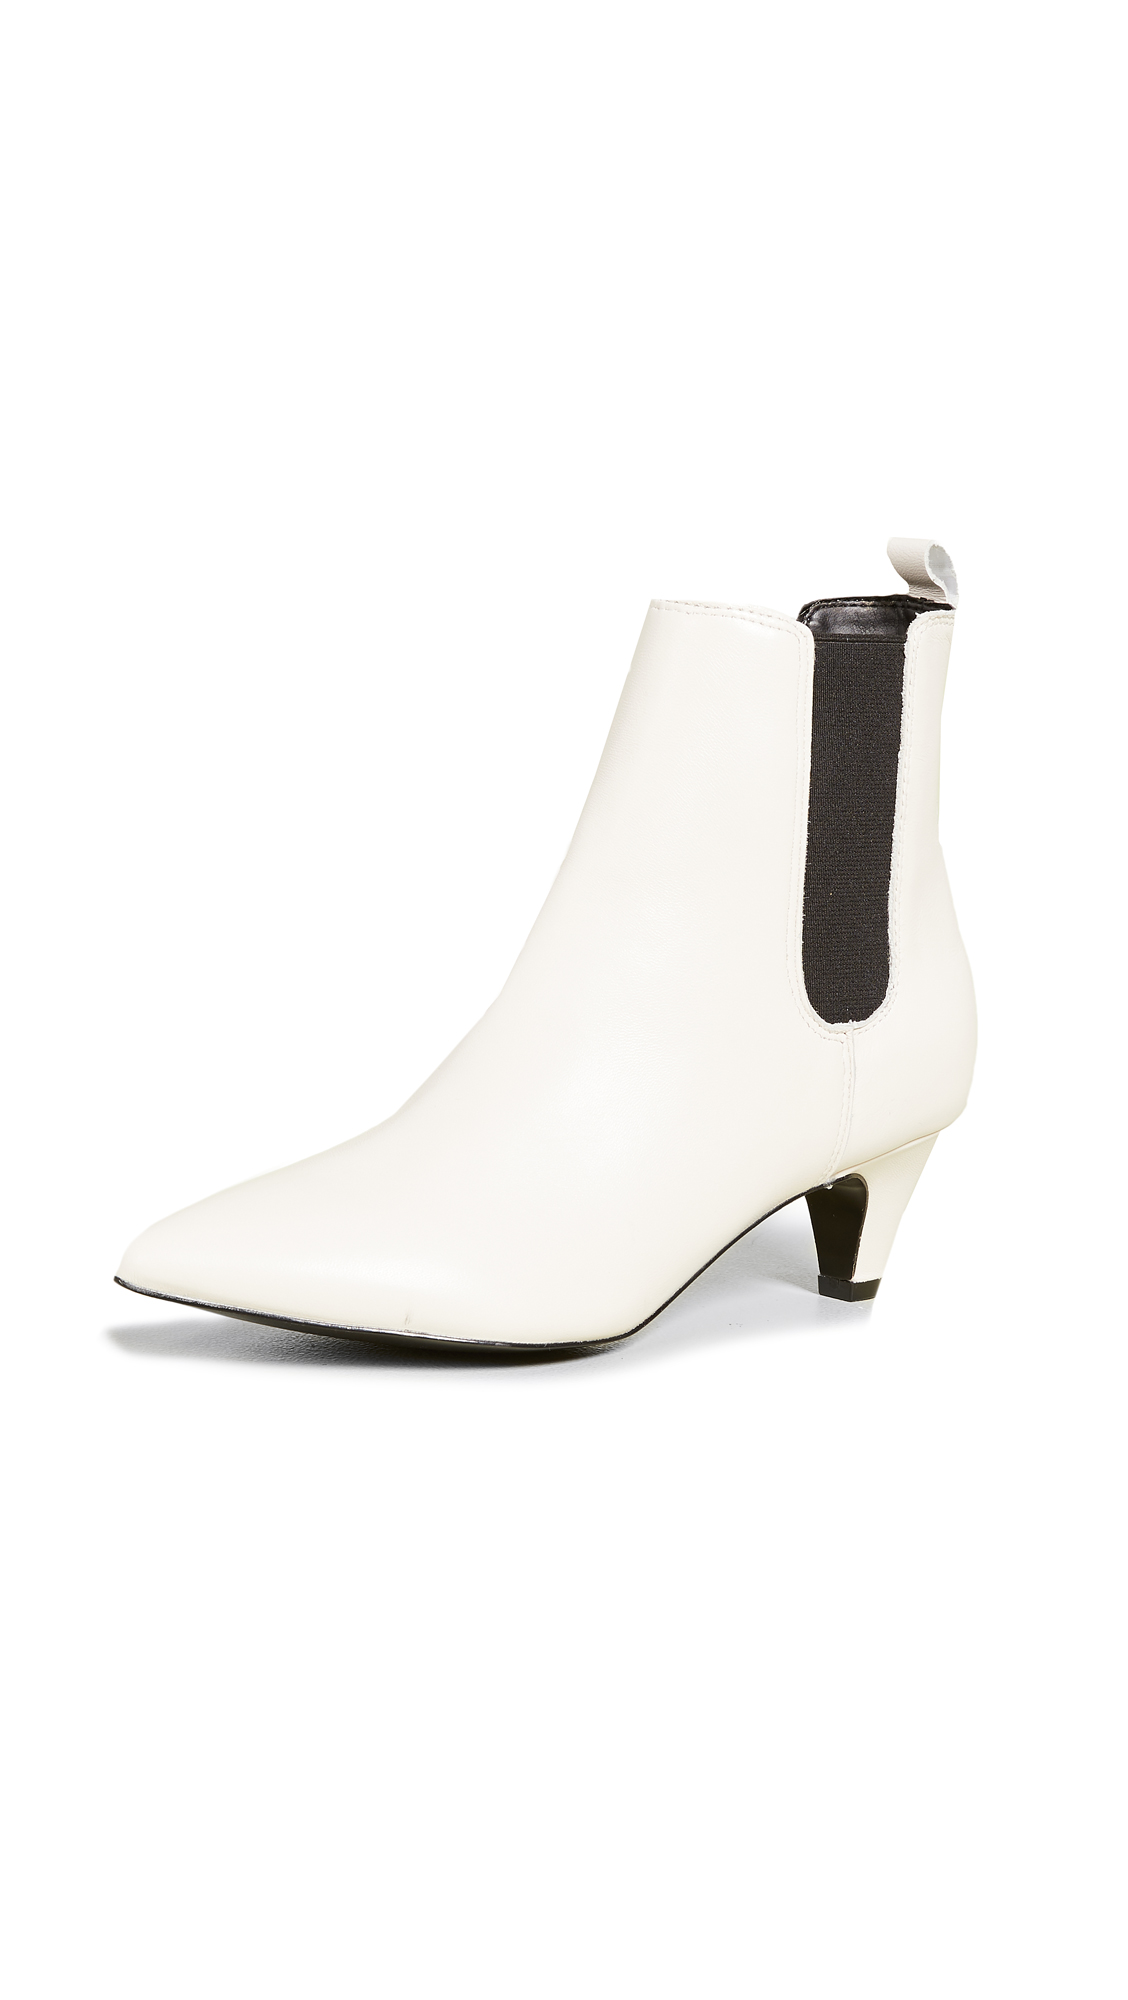 KENDALL + KYLIE Pierce Point Toe Booties - Ivory Multi